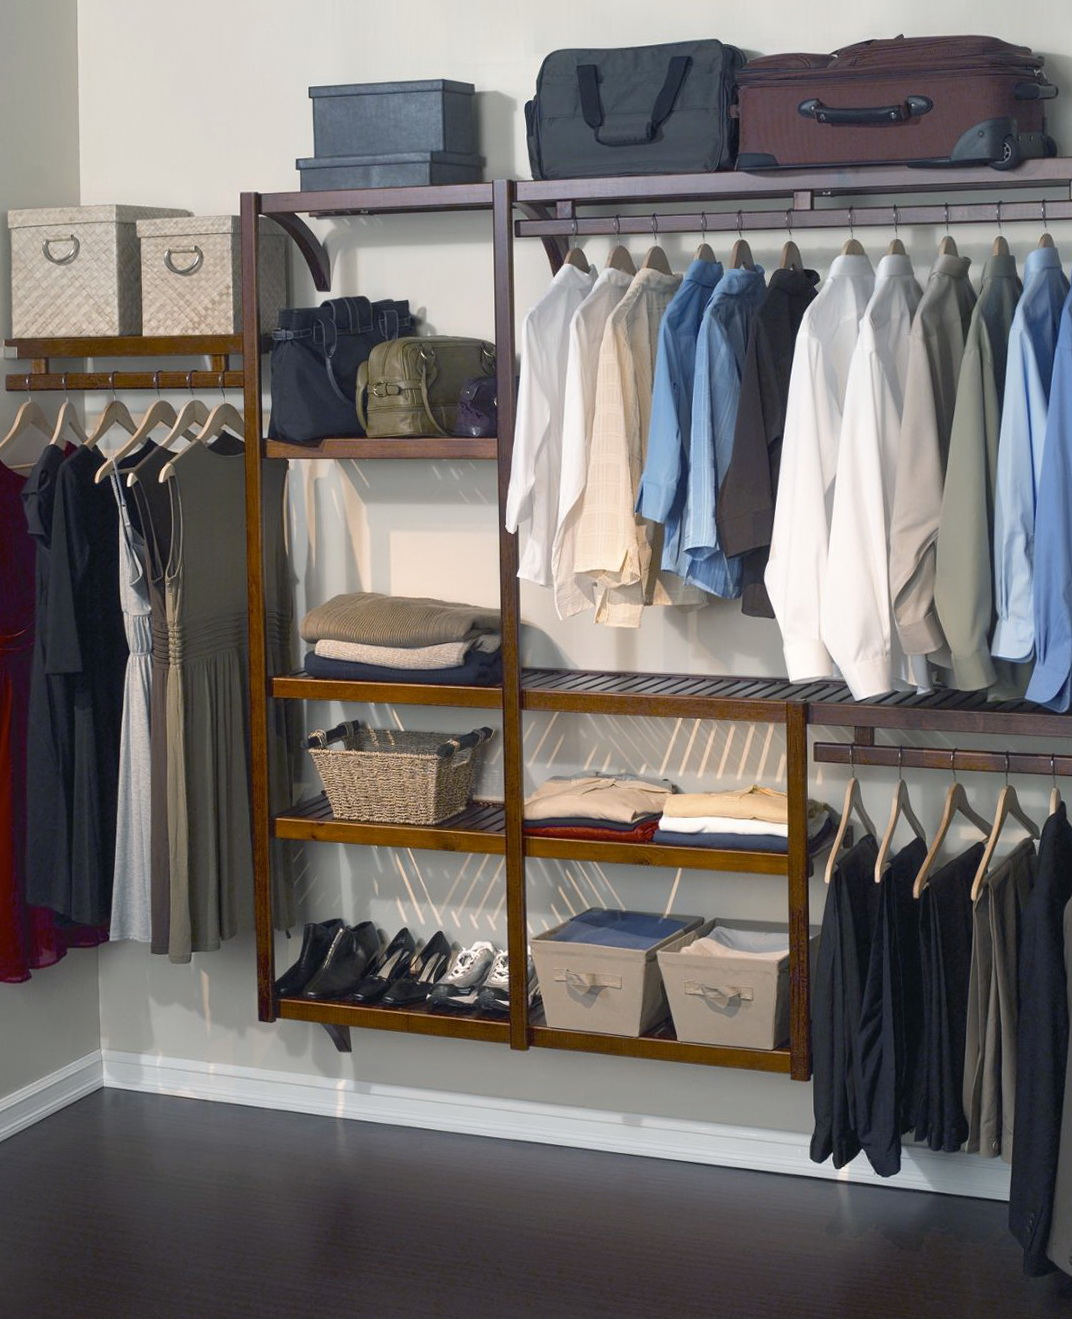 Best closet organizer systems home design ideas for Best closet organization systems